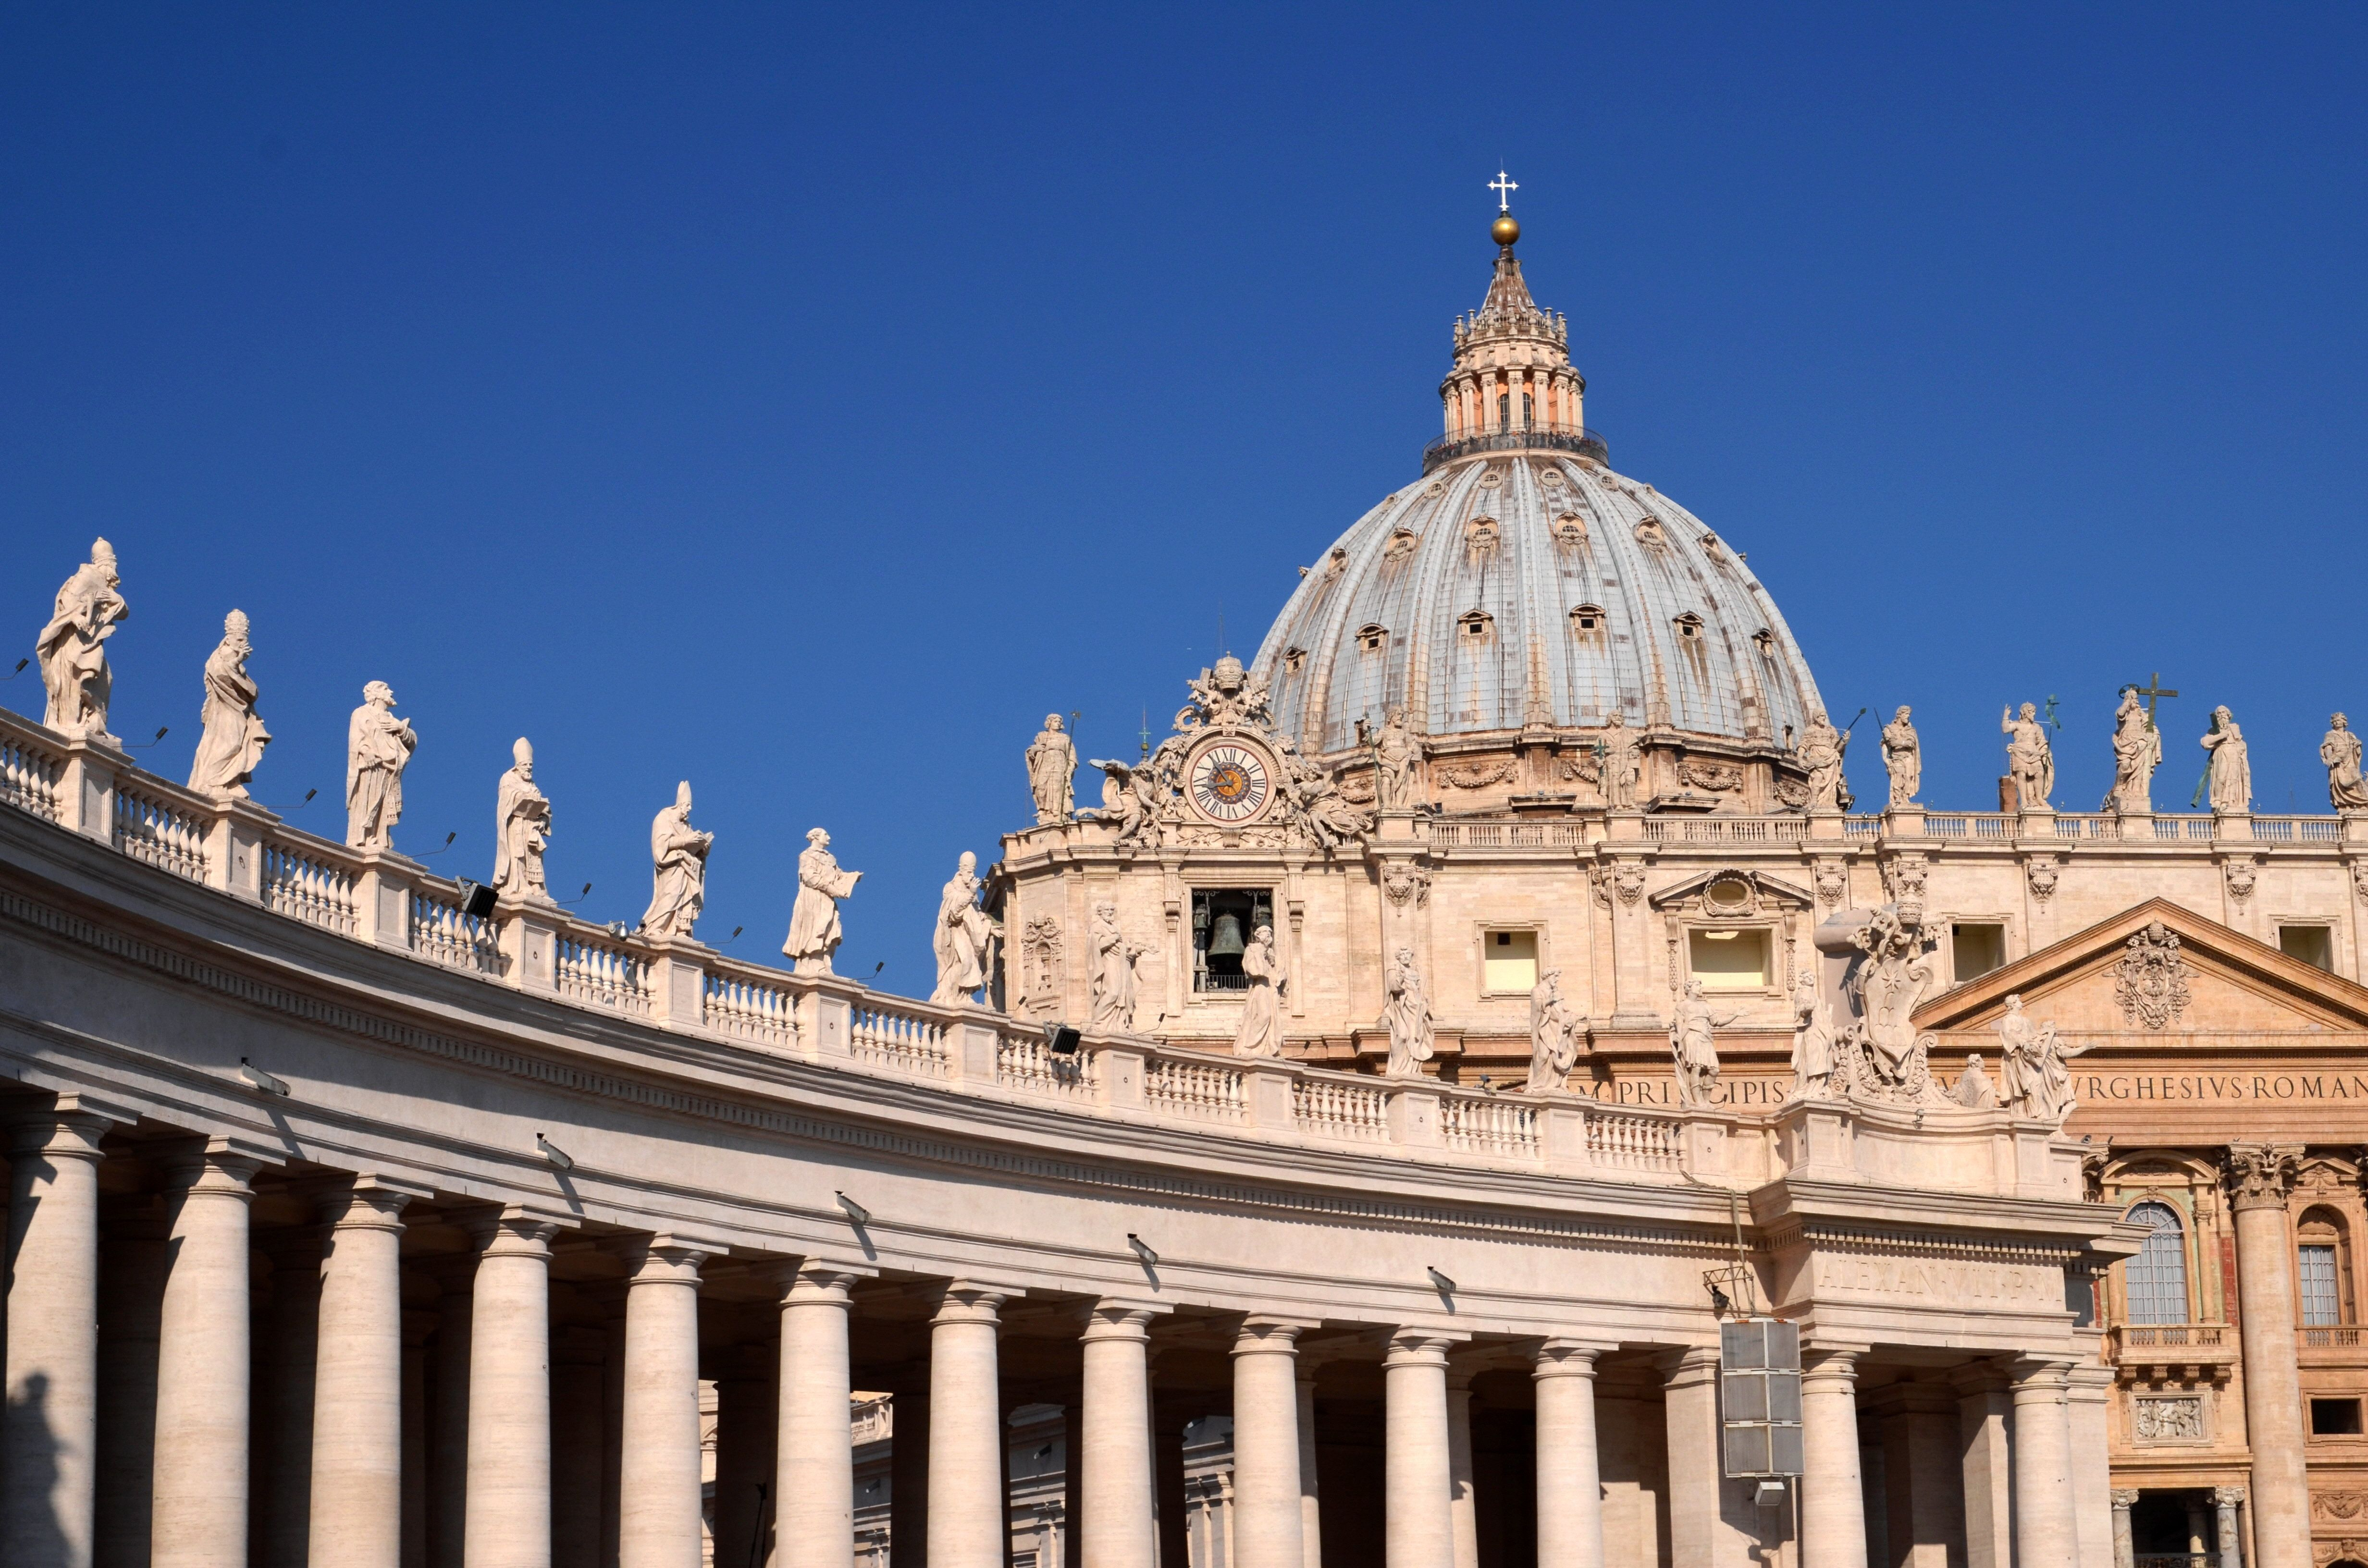 Vatican City, Vatican - August 22, 2014: Monumental St. Peters Basilica in Vatican City. St. Peters Basilica is papal late renaissance basilica consecrated in 1626.